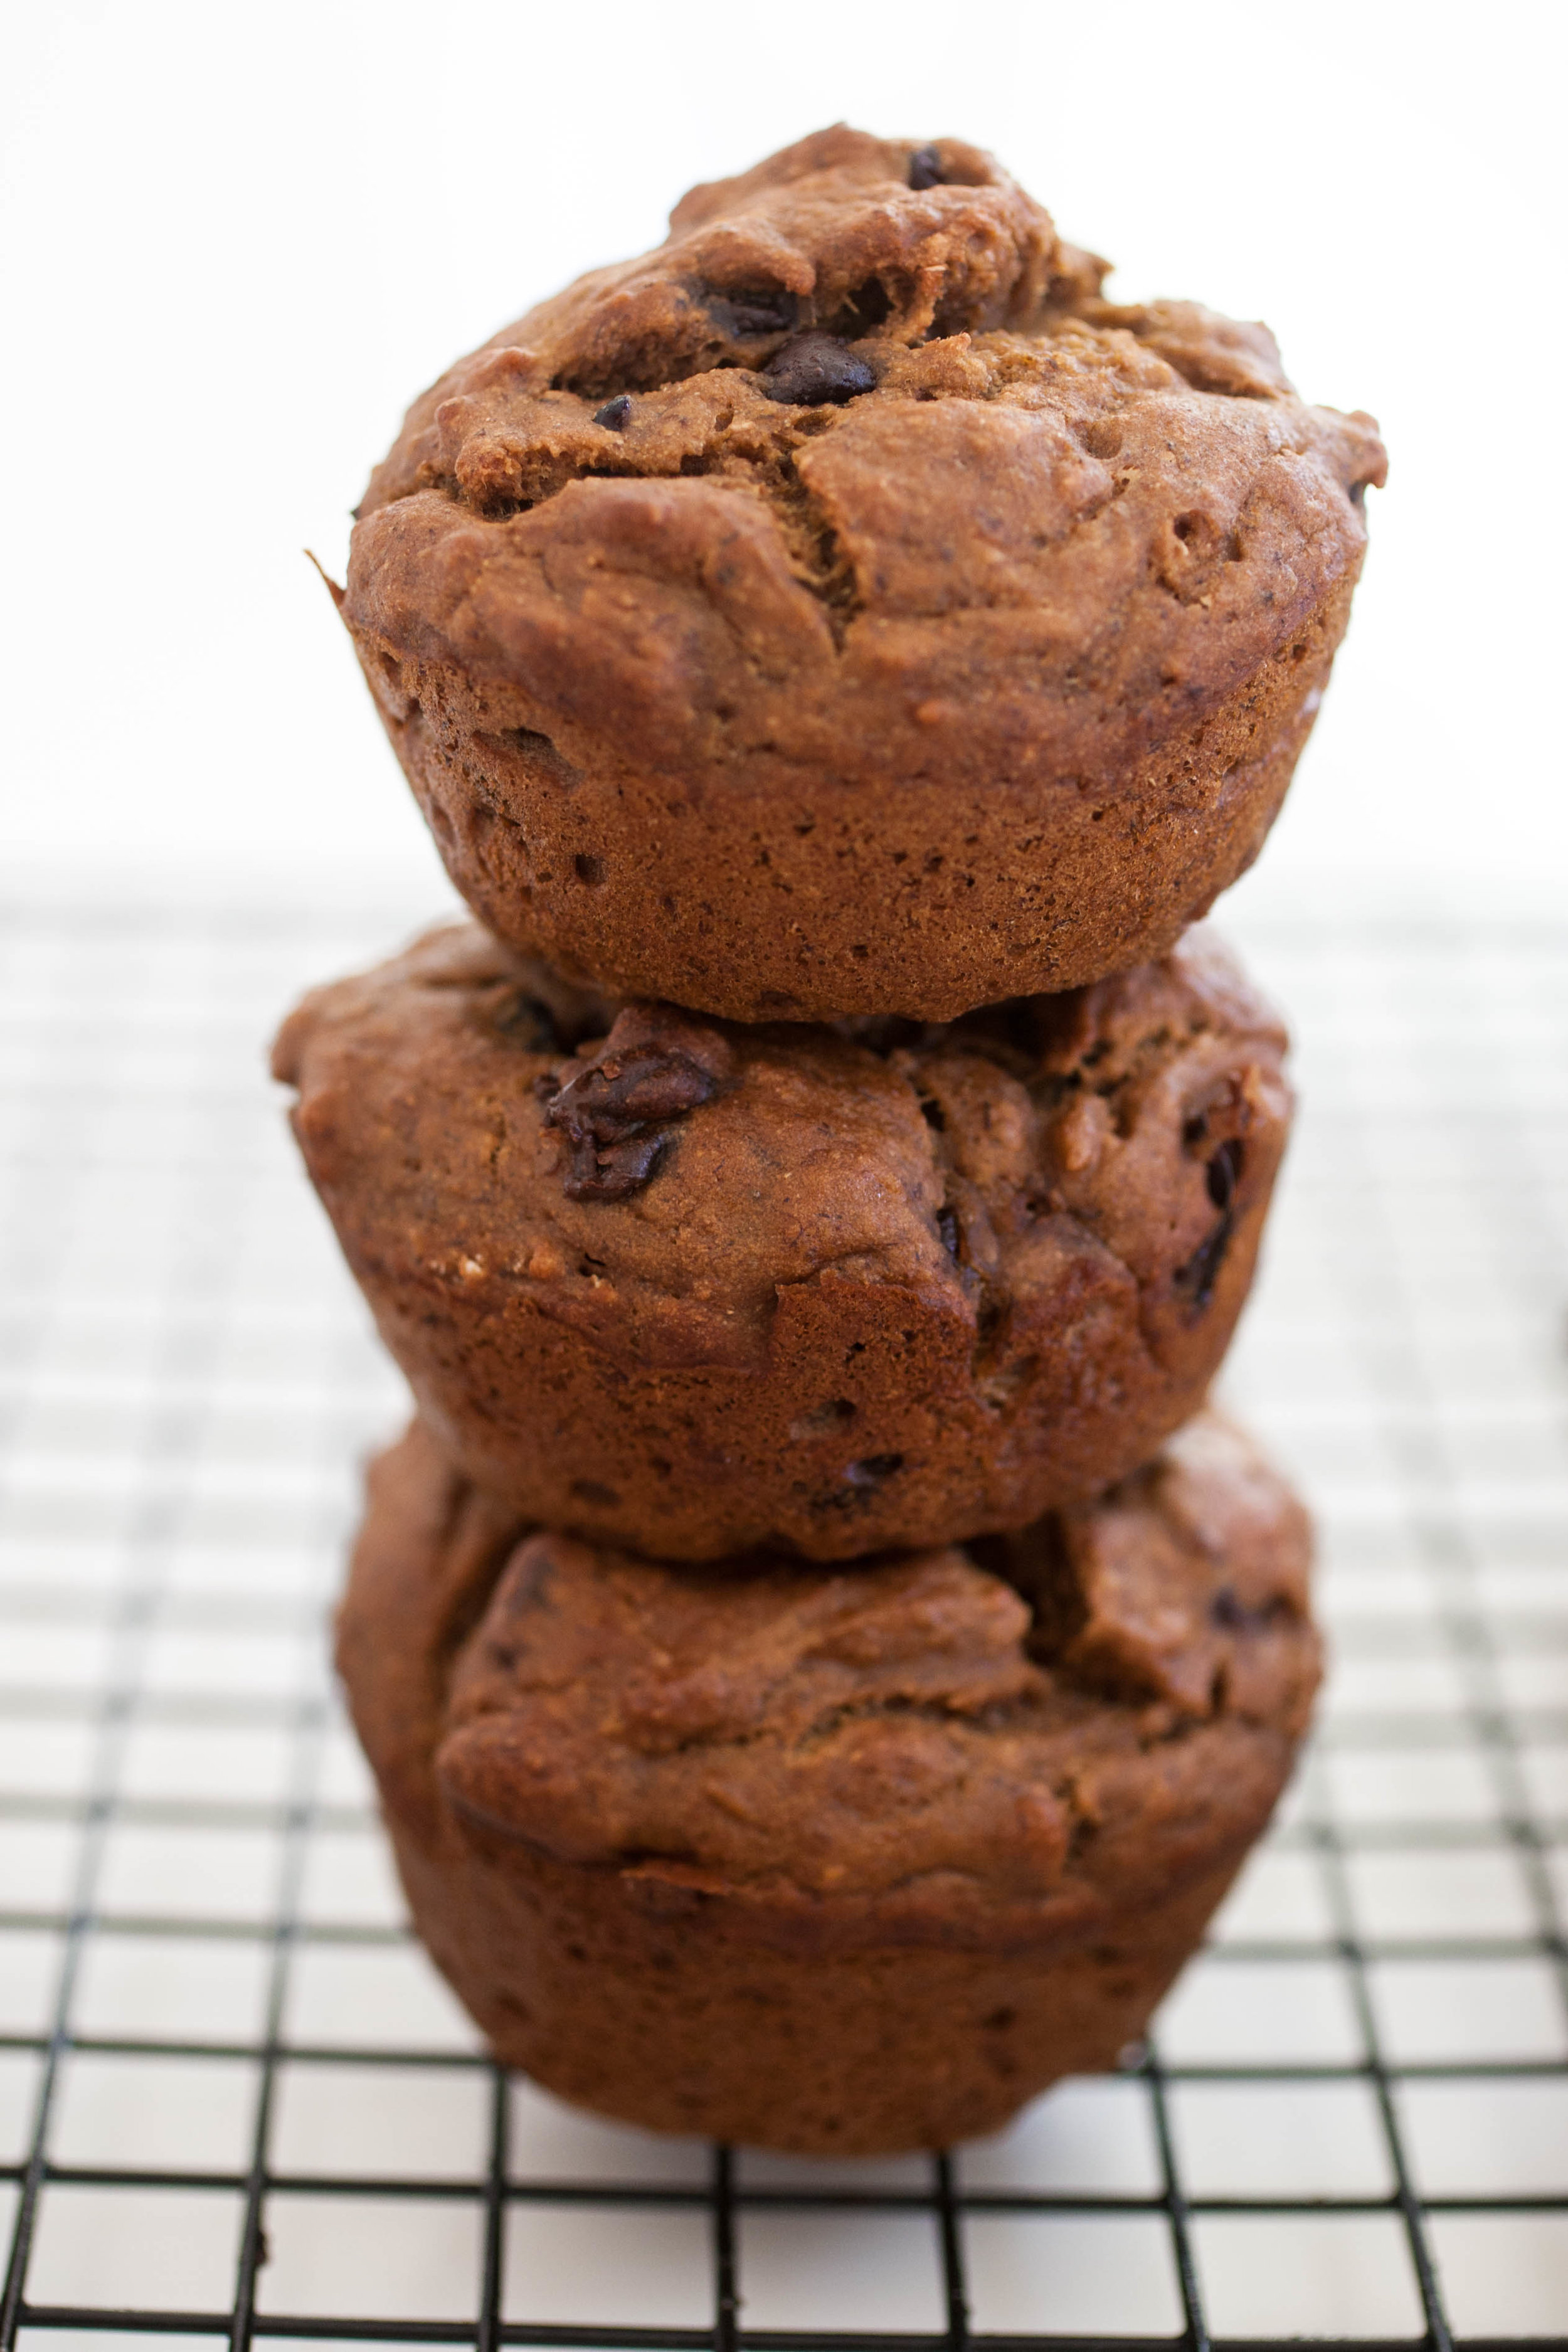 Produce On Parade - Vegan Banana Muffins - This is my go-to, super easy, and quick recipe for vegan banana muffins. These are scrumptious enough to be a treat, but healthy enough to snack on. I like to use a combination of flours such a spelt and sorghum, and toss in chocolate chips and dried cranberries; but feel free to add in whatever you like. This recipe is very adaptable. I freeze leftovers for breakfast during the week!